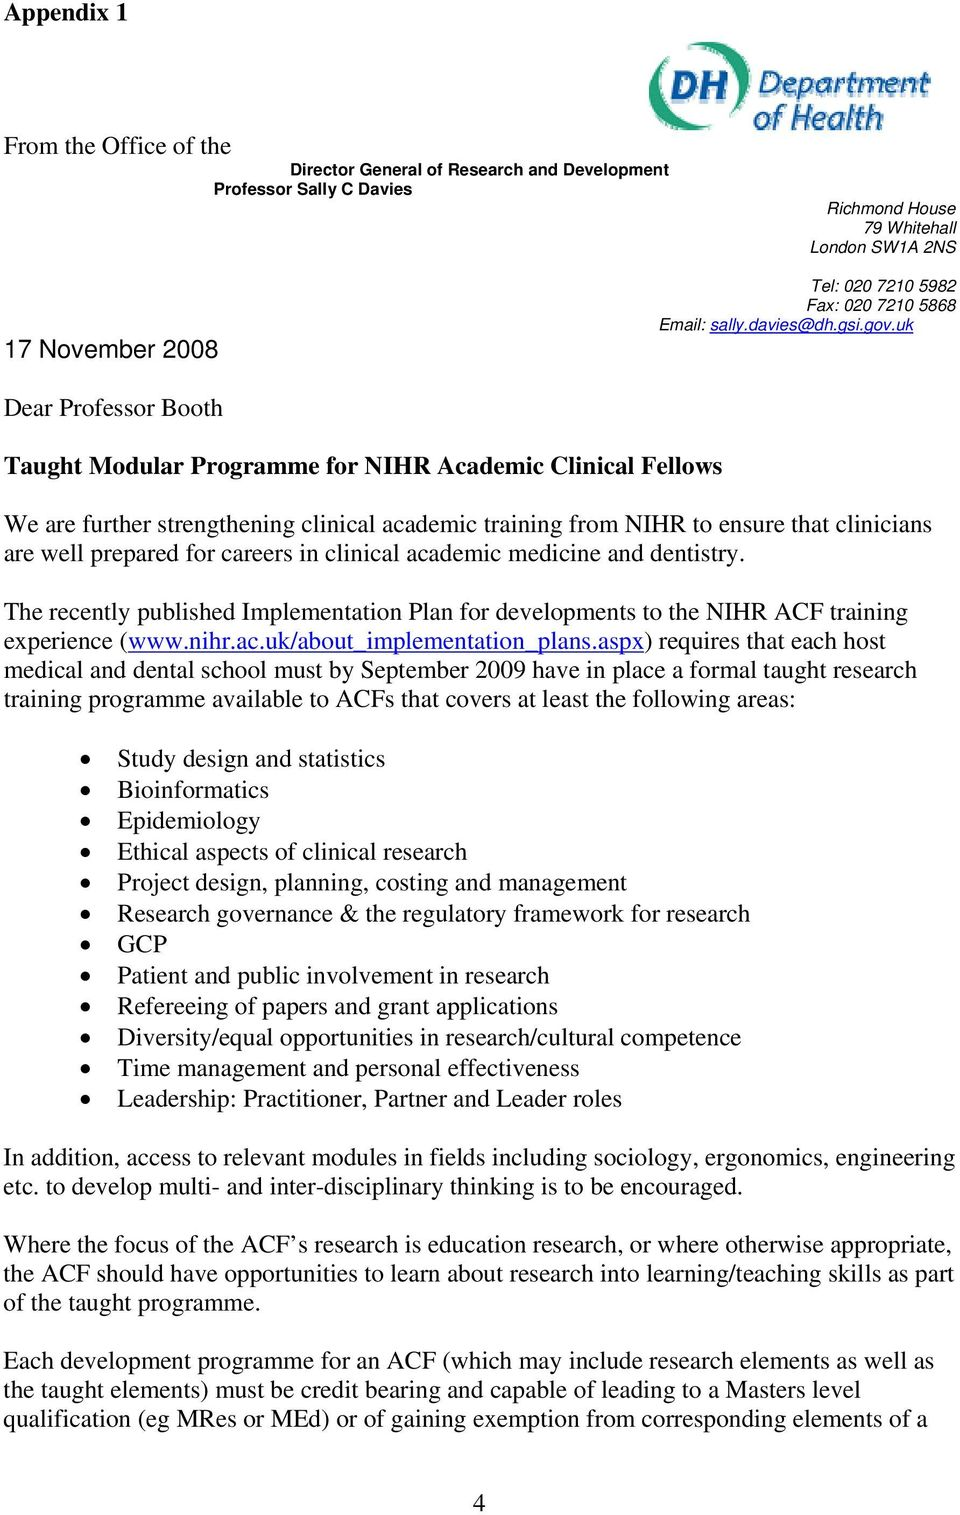 uk Dear Professor Booth Taught Modular Programme for NIHR Academic Clinical Fellows We are further strengthening clinical academic training from NIHR to ensure that clinicians are well prepared for